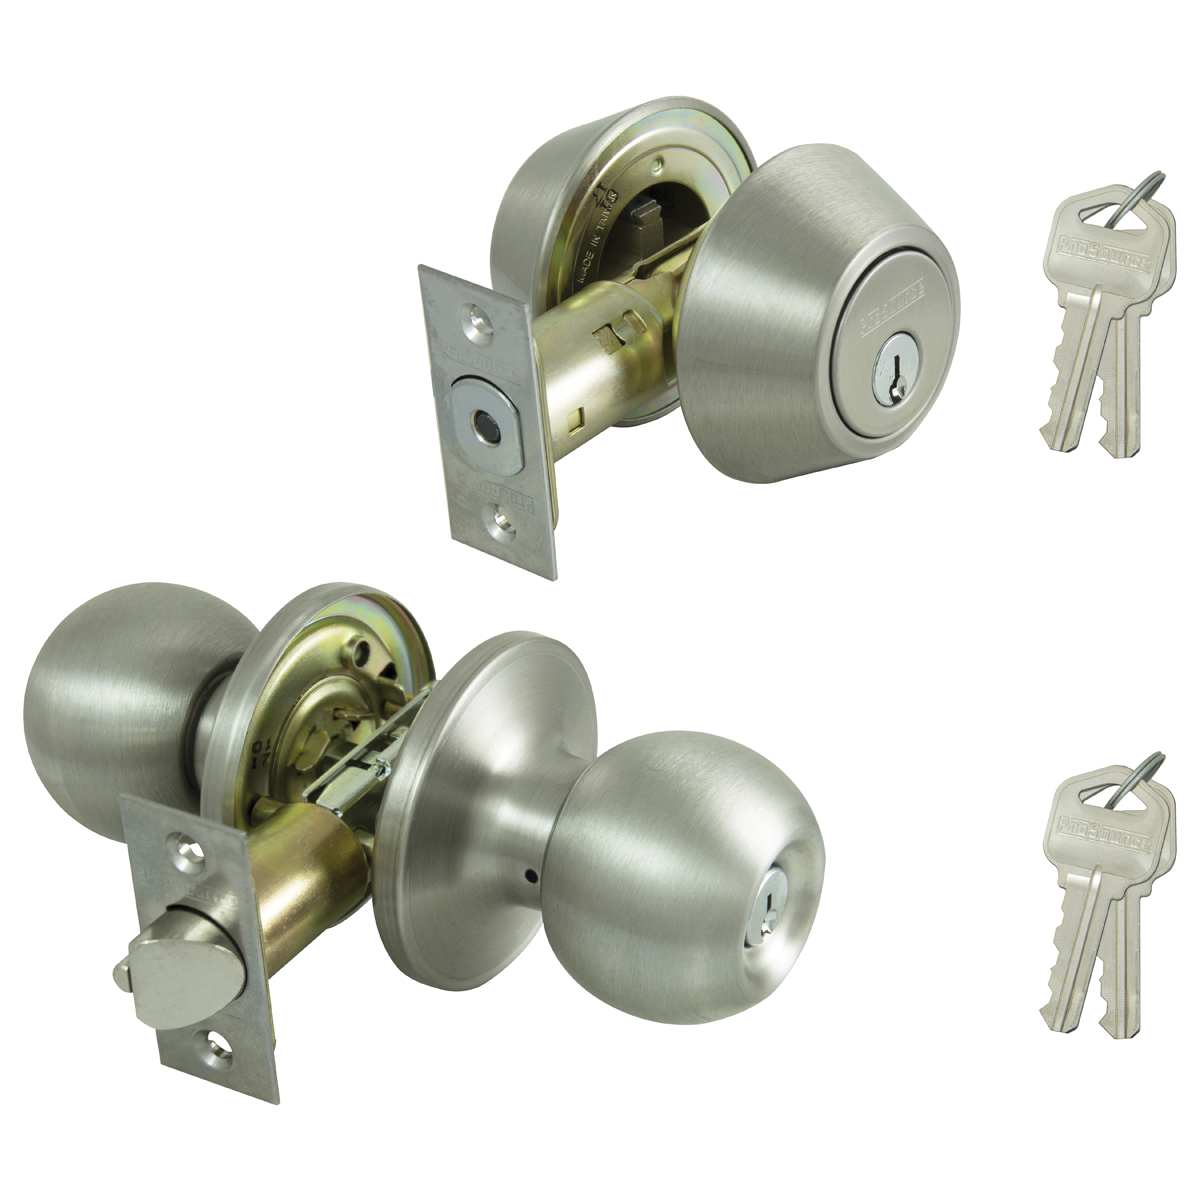 Picture of Prosource B36B1-PS Deadbolt and Entry Lockset, Keyed Alike Key, Brass